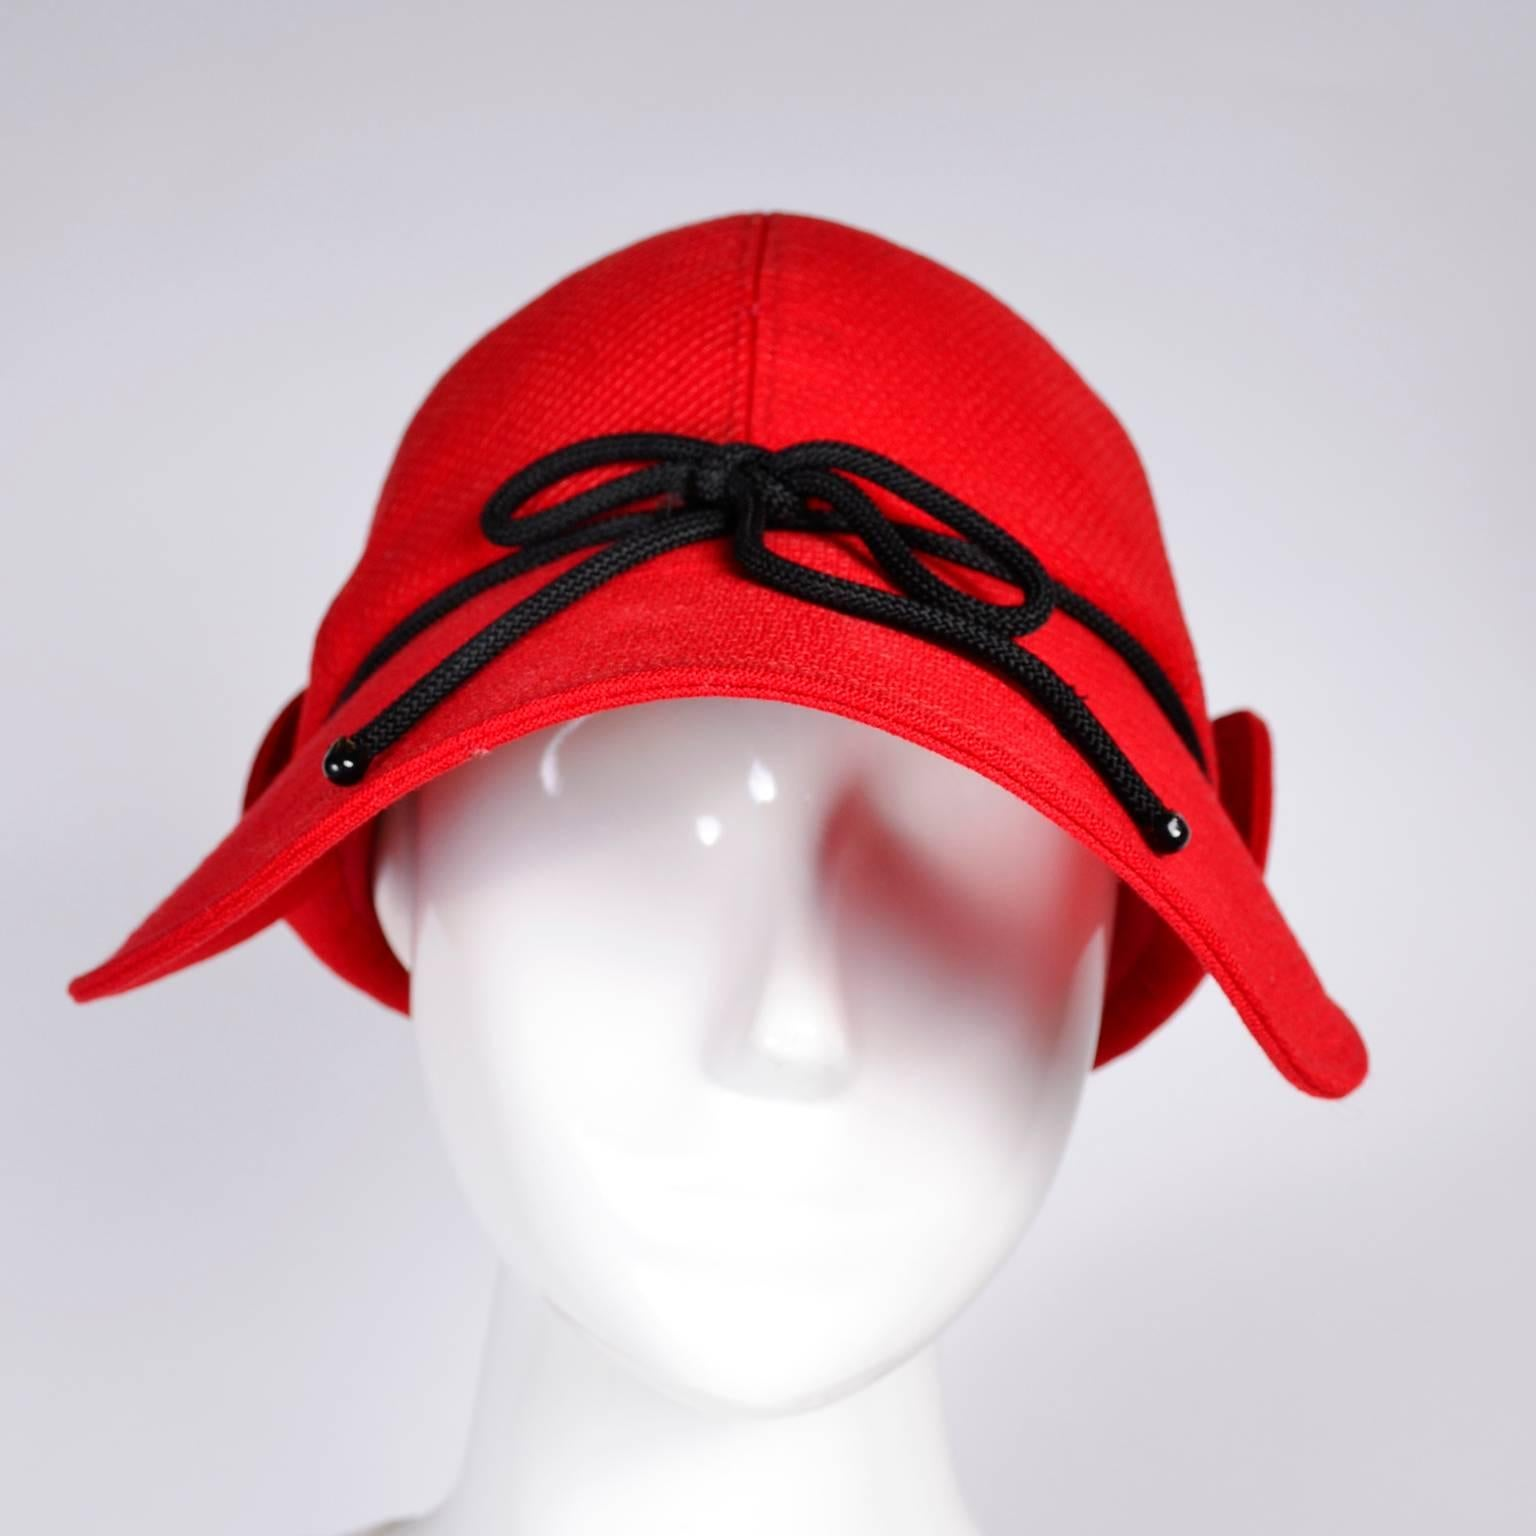 cf92e46212d 1970s Rare Yves Saint Laurent YSL Hat in Red with Black Trim For Sale at  1stdibs